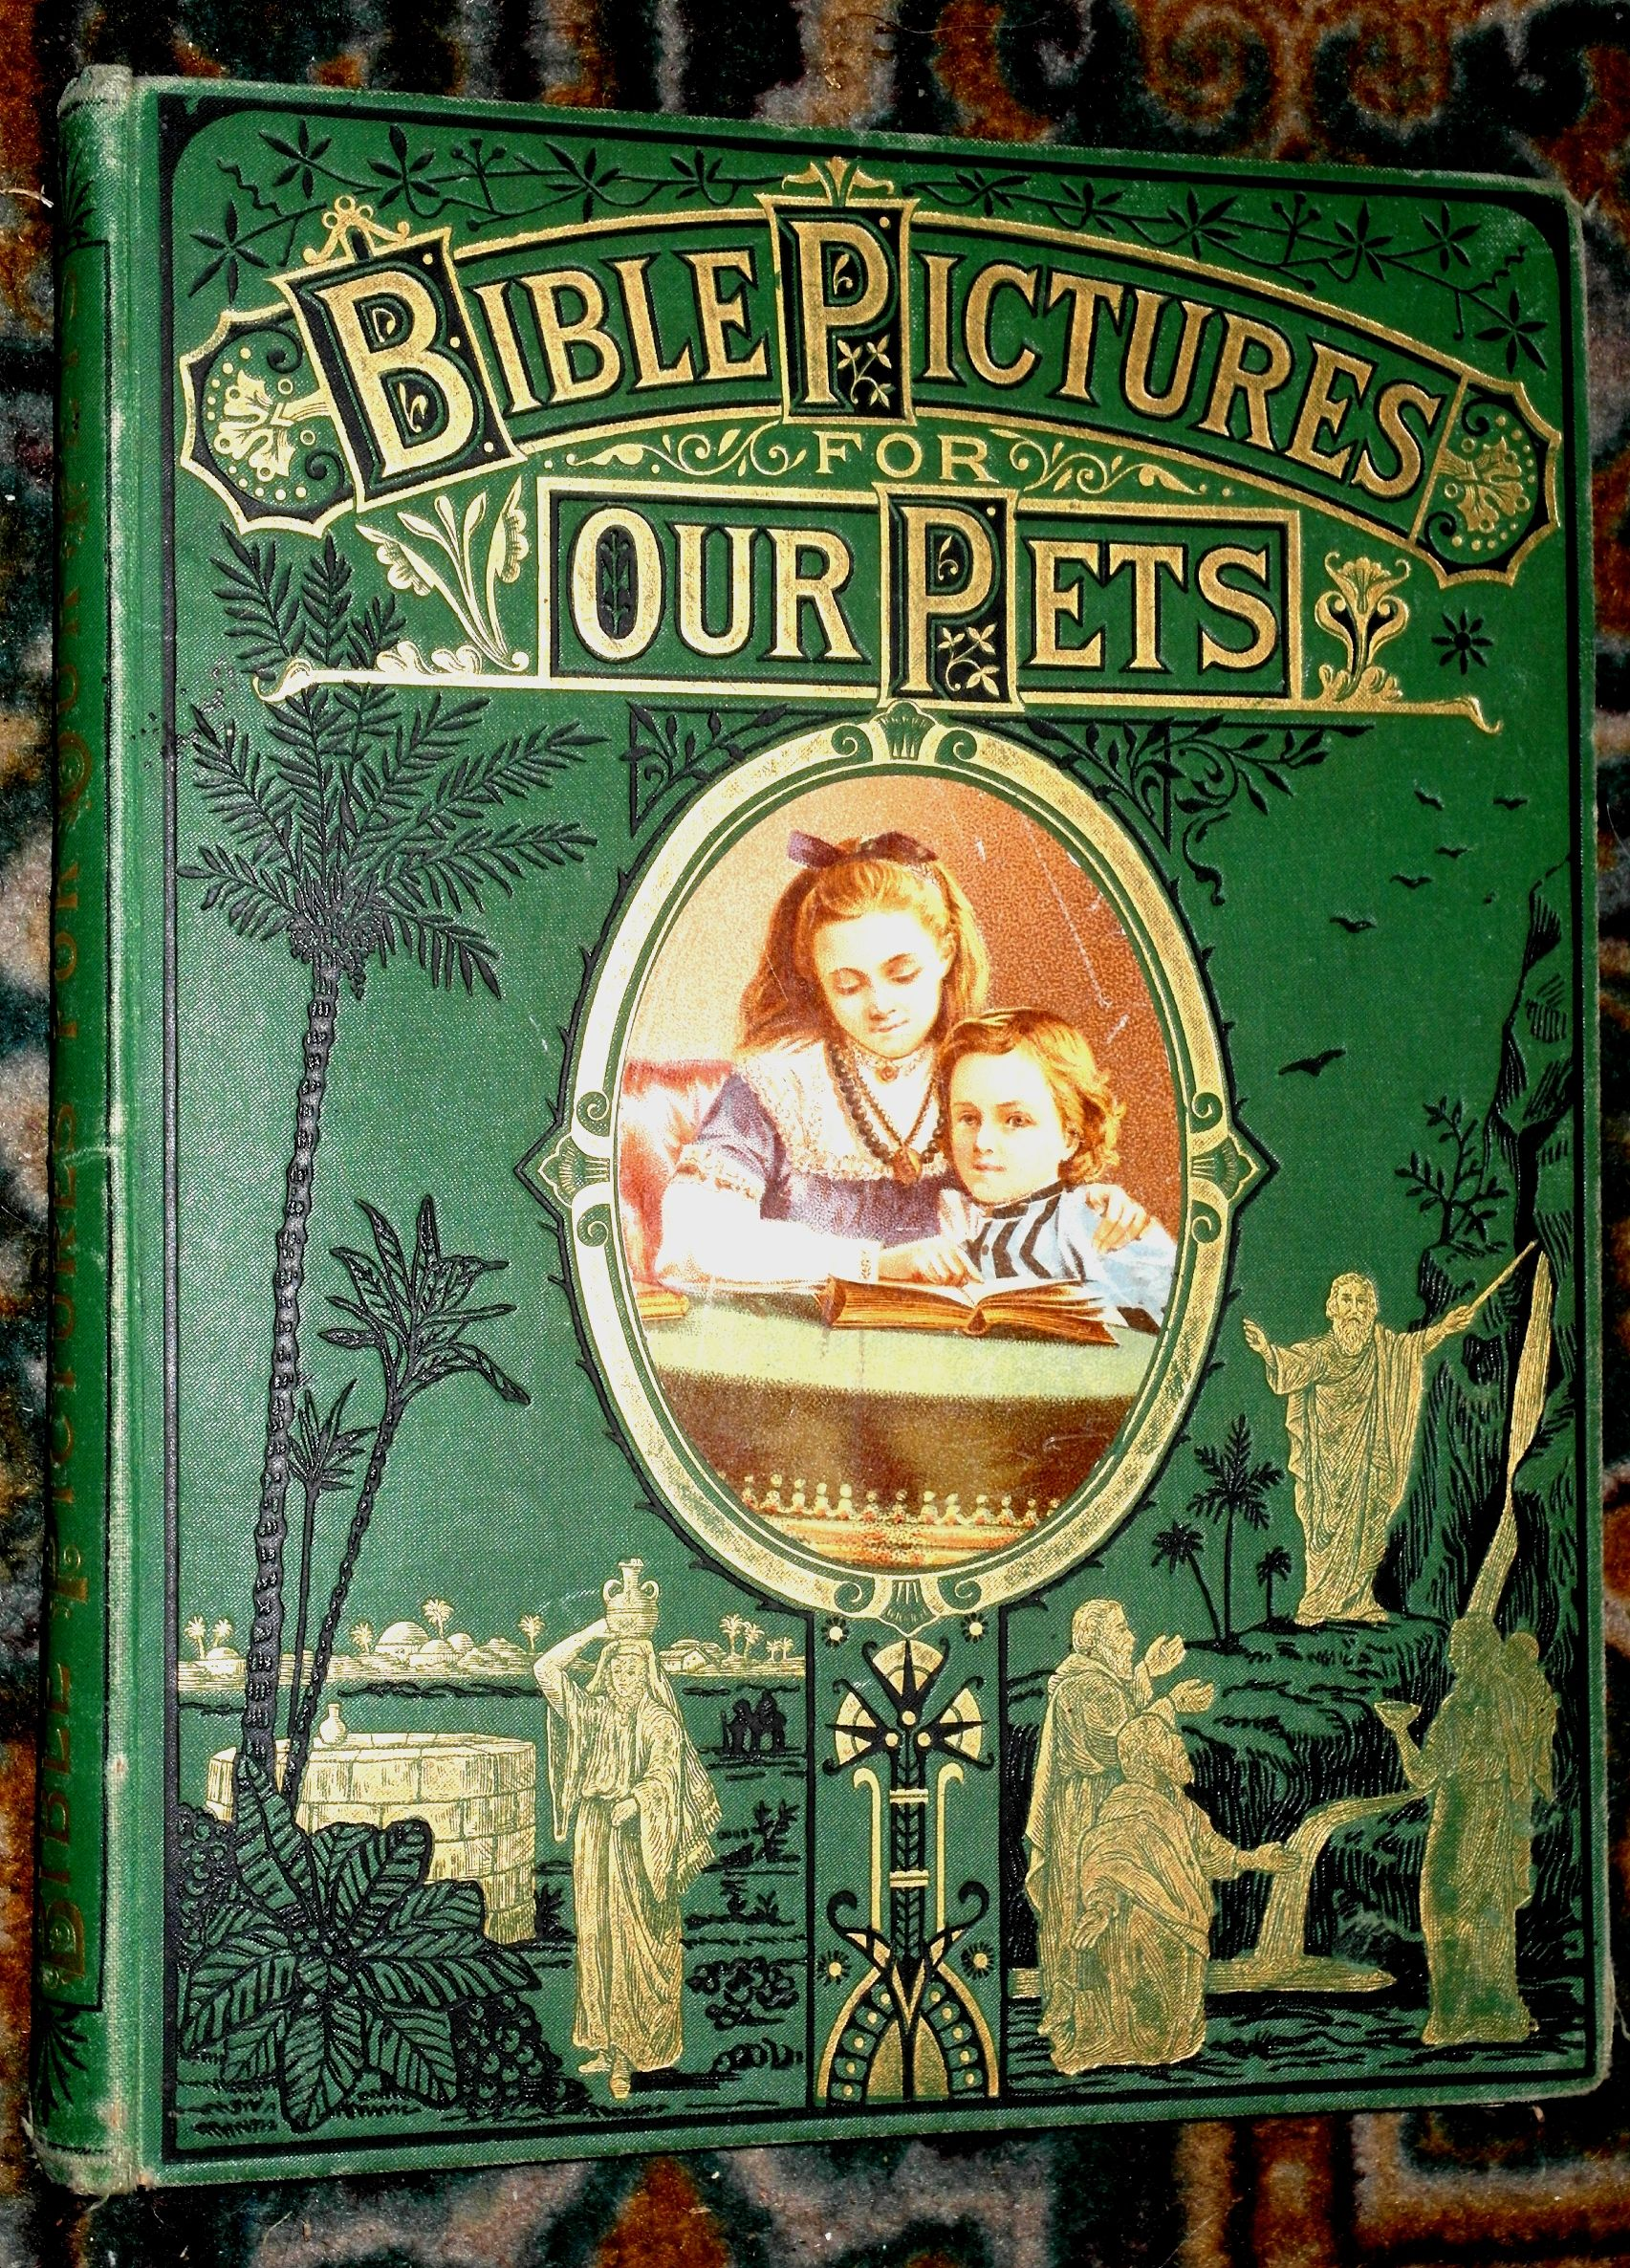 Beautifully Illustrated Book Covers ~ Bible pictures for our pets c illustrated children s